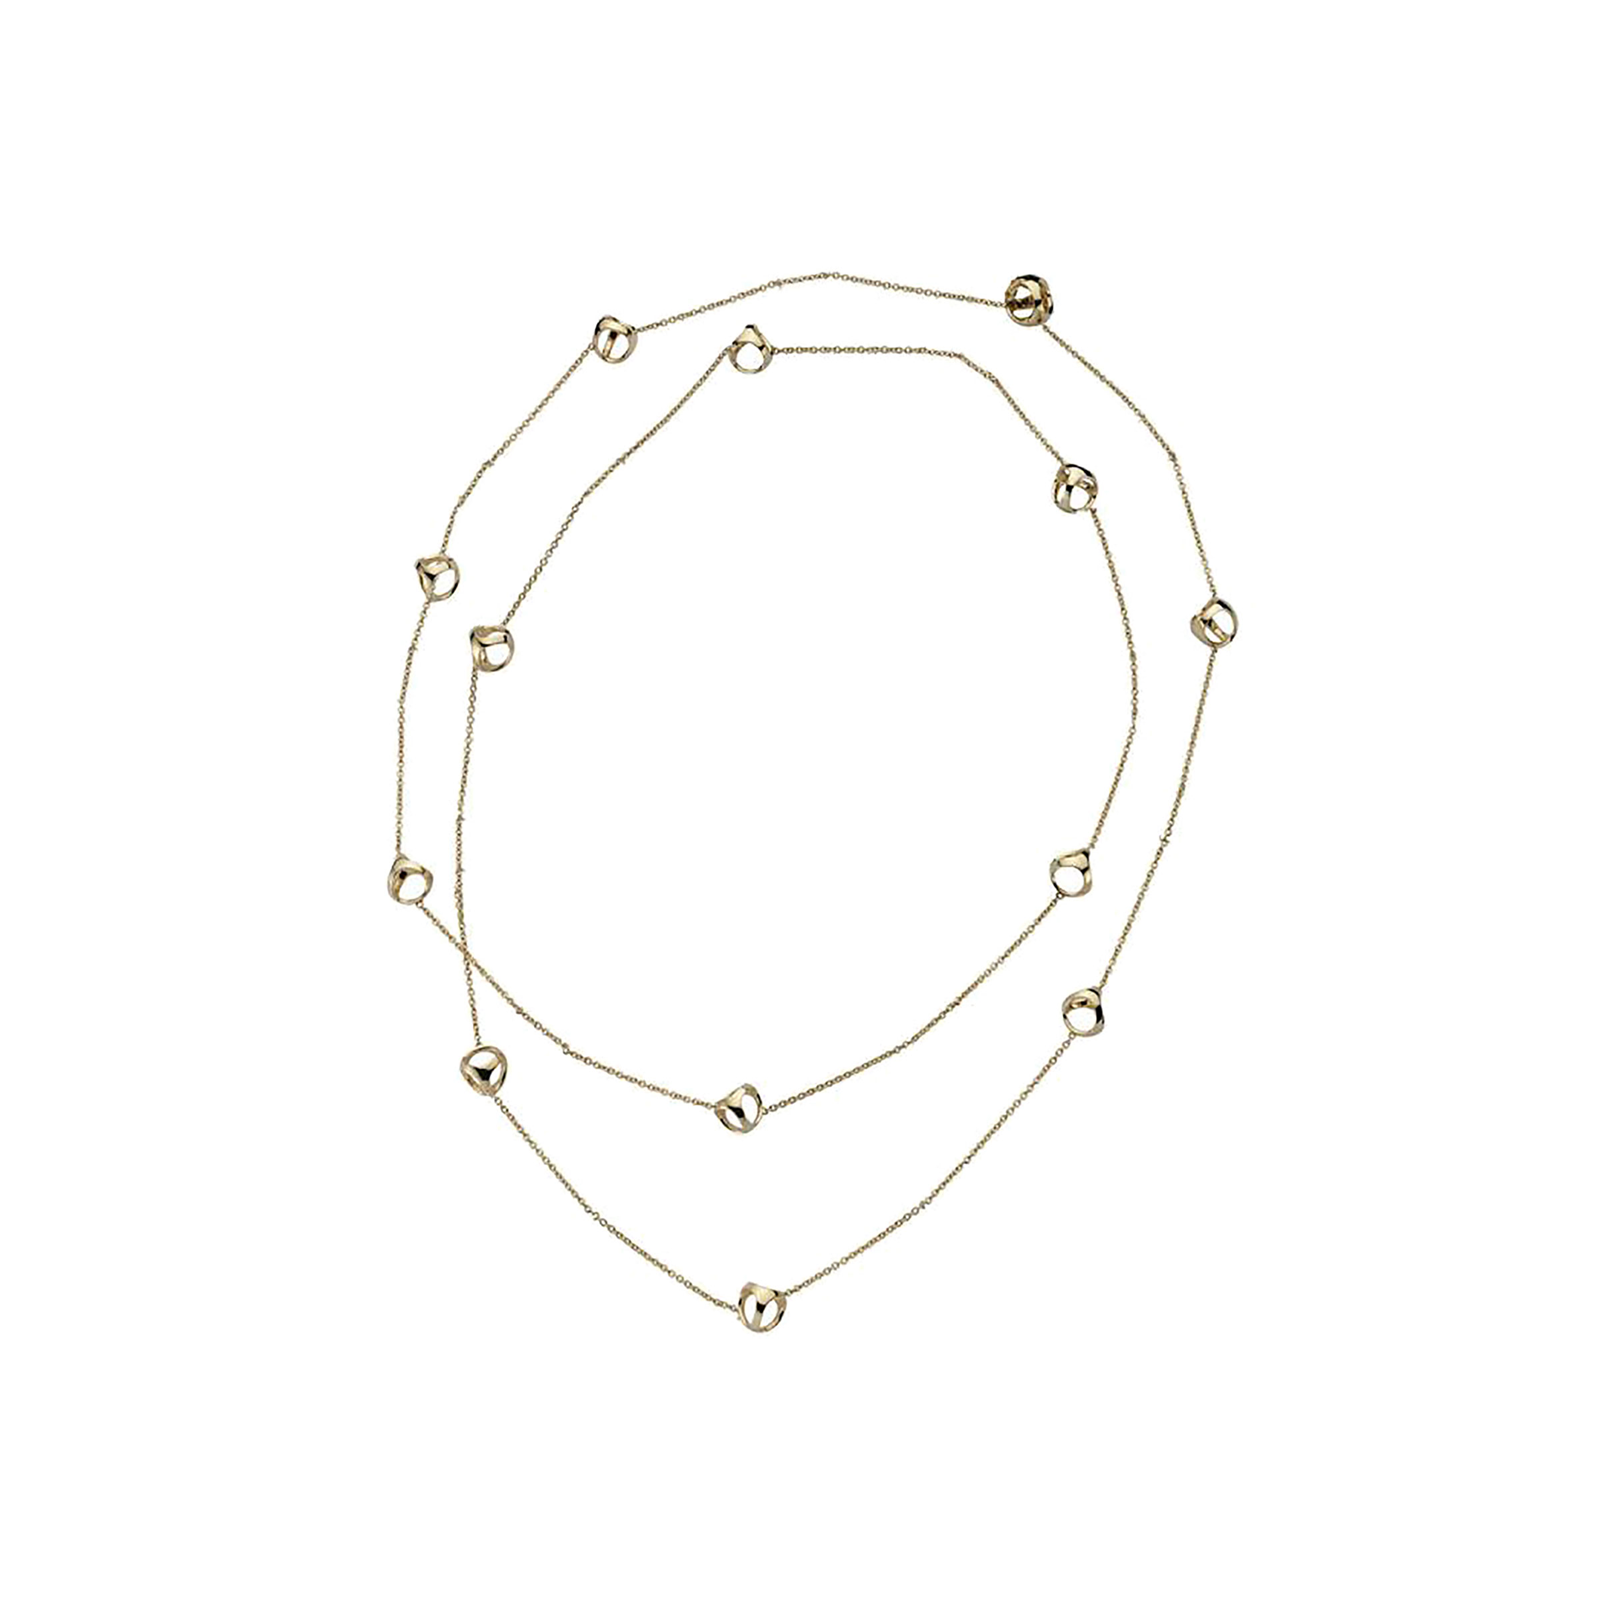 Di Modolo Icona 18ct Yellow Gold 42 Inch Necklace